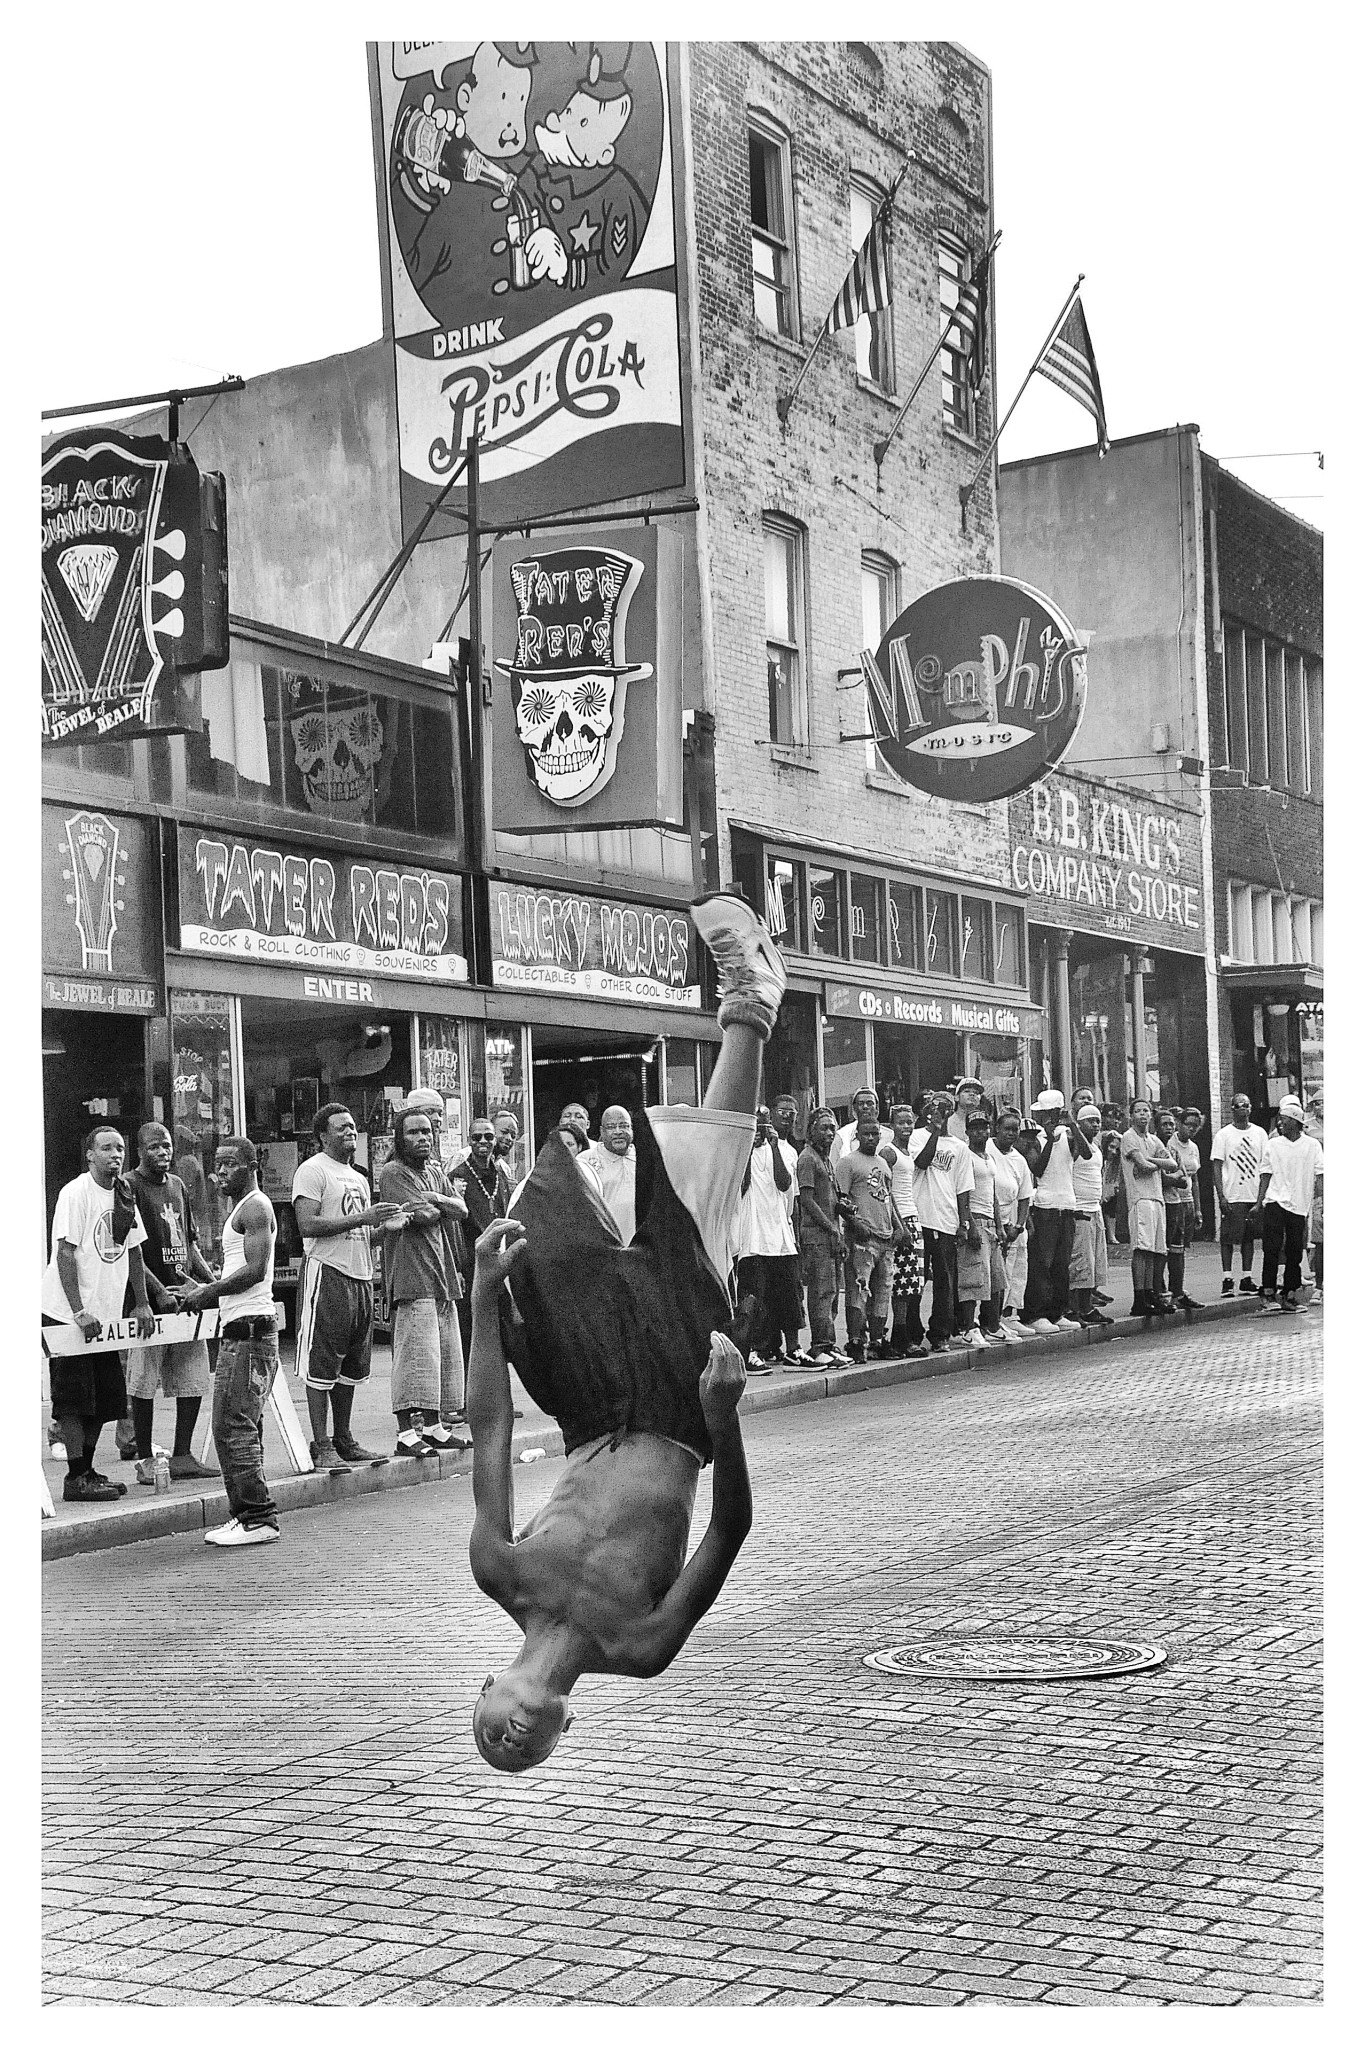 Street performer on Beale Street in Memphis